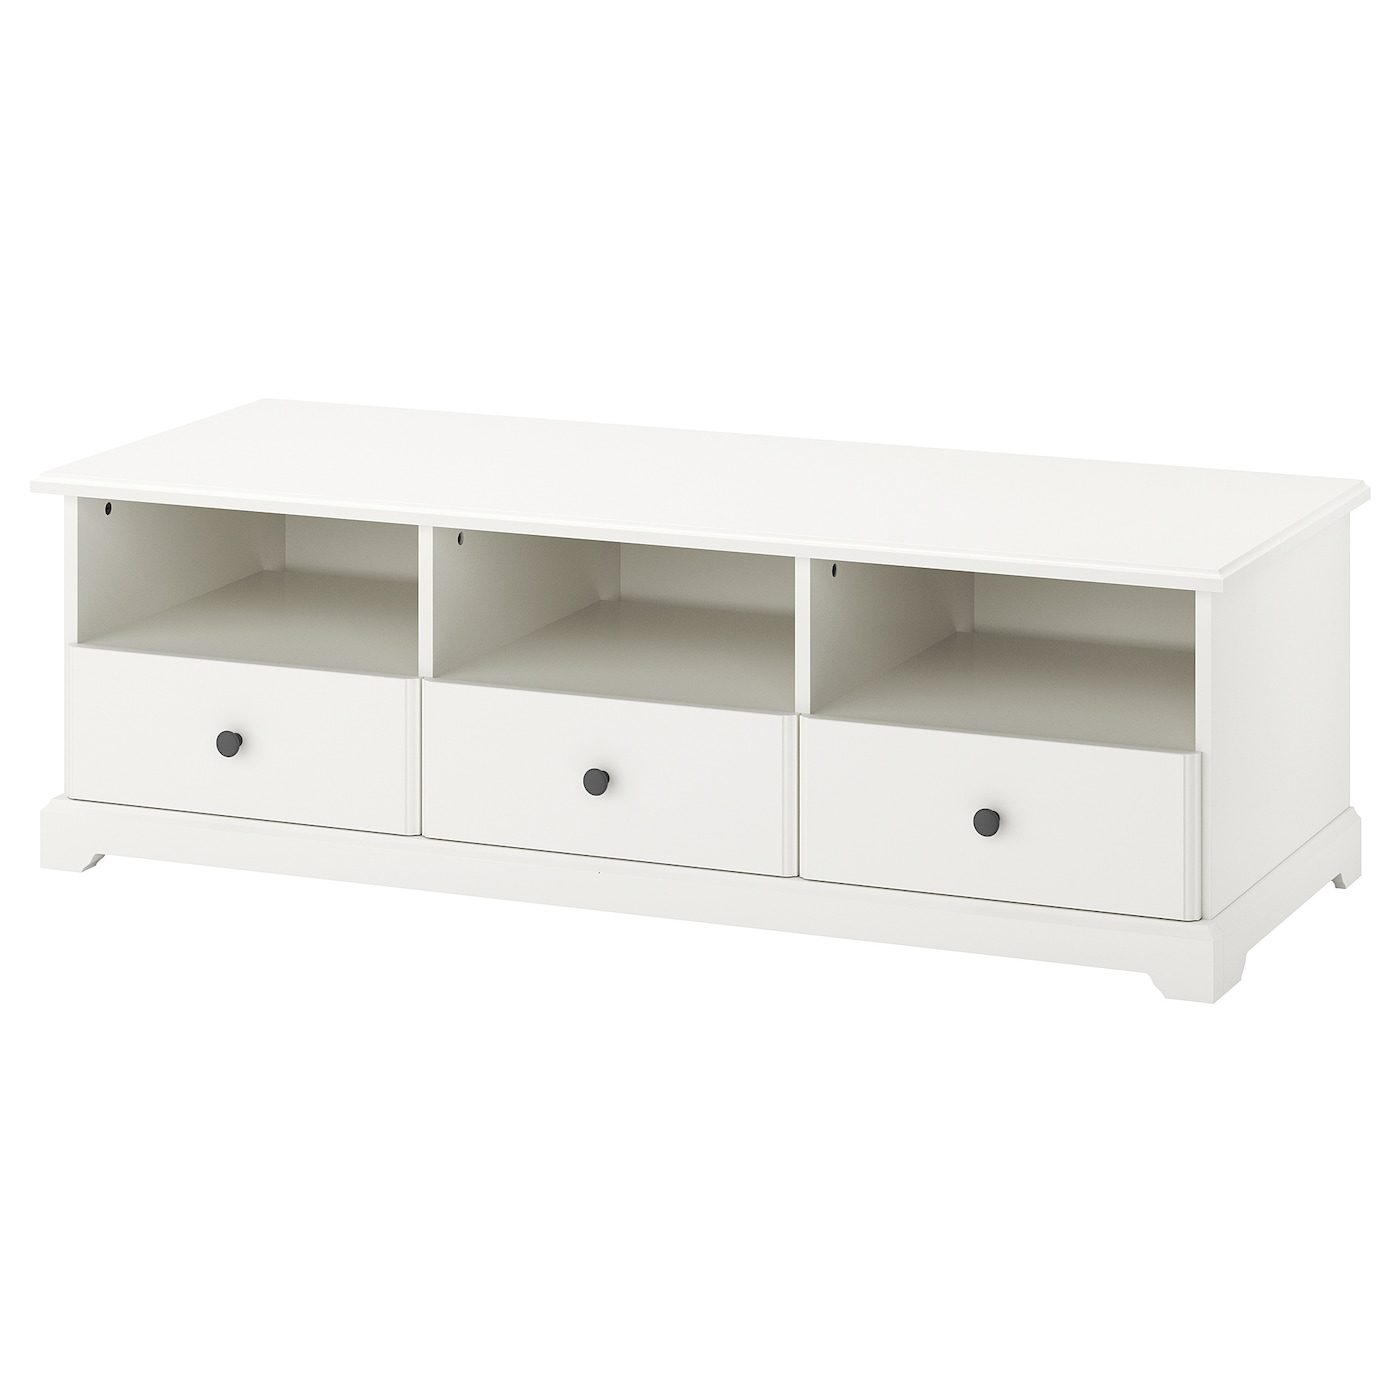 Liatorp mueble tv blanco 145 x 49 x 45 cm ikea for Muebles tv modernos ikea